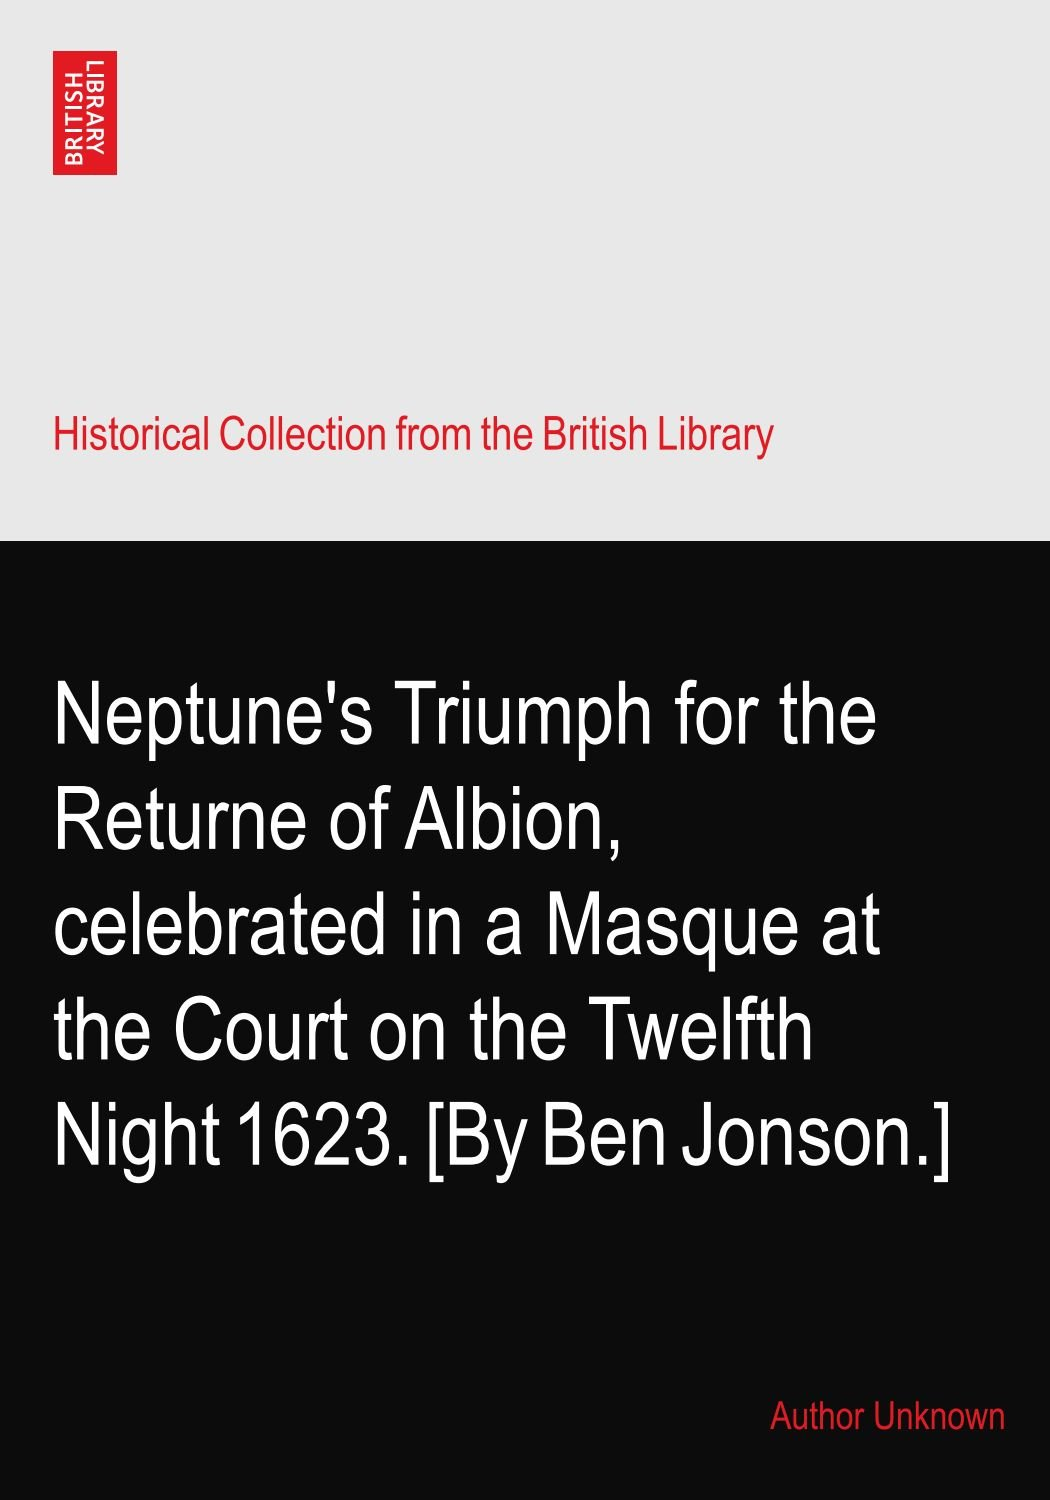 Neptune's Triumph for the Returne of Albion, celebrated in a Masque at the Court on the Twelfth Night 1623. [By Ben Jonson.] ebook